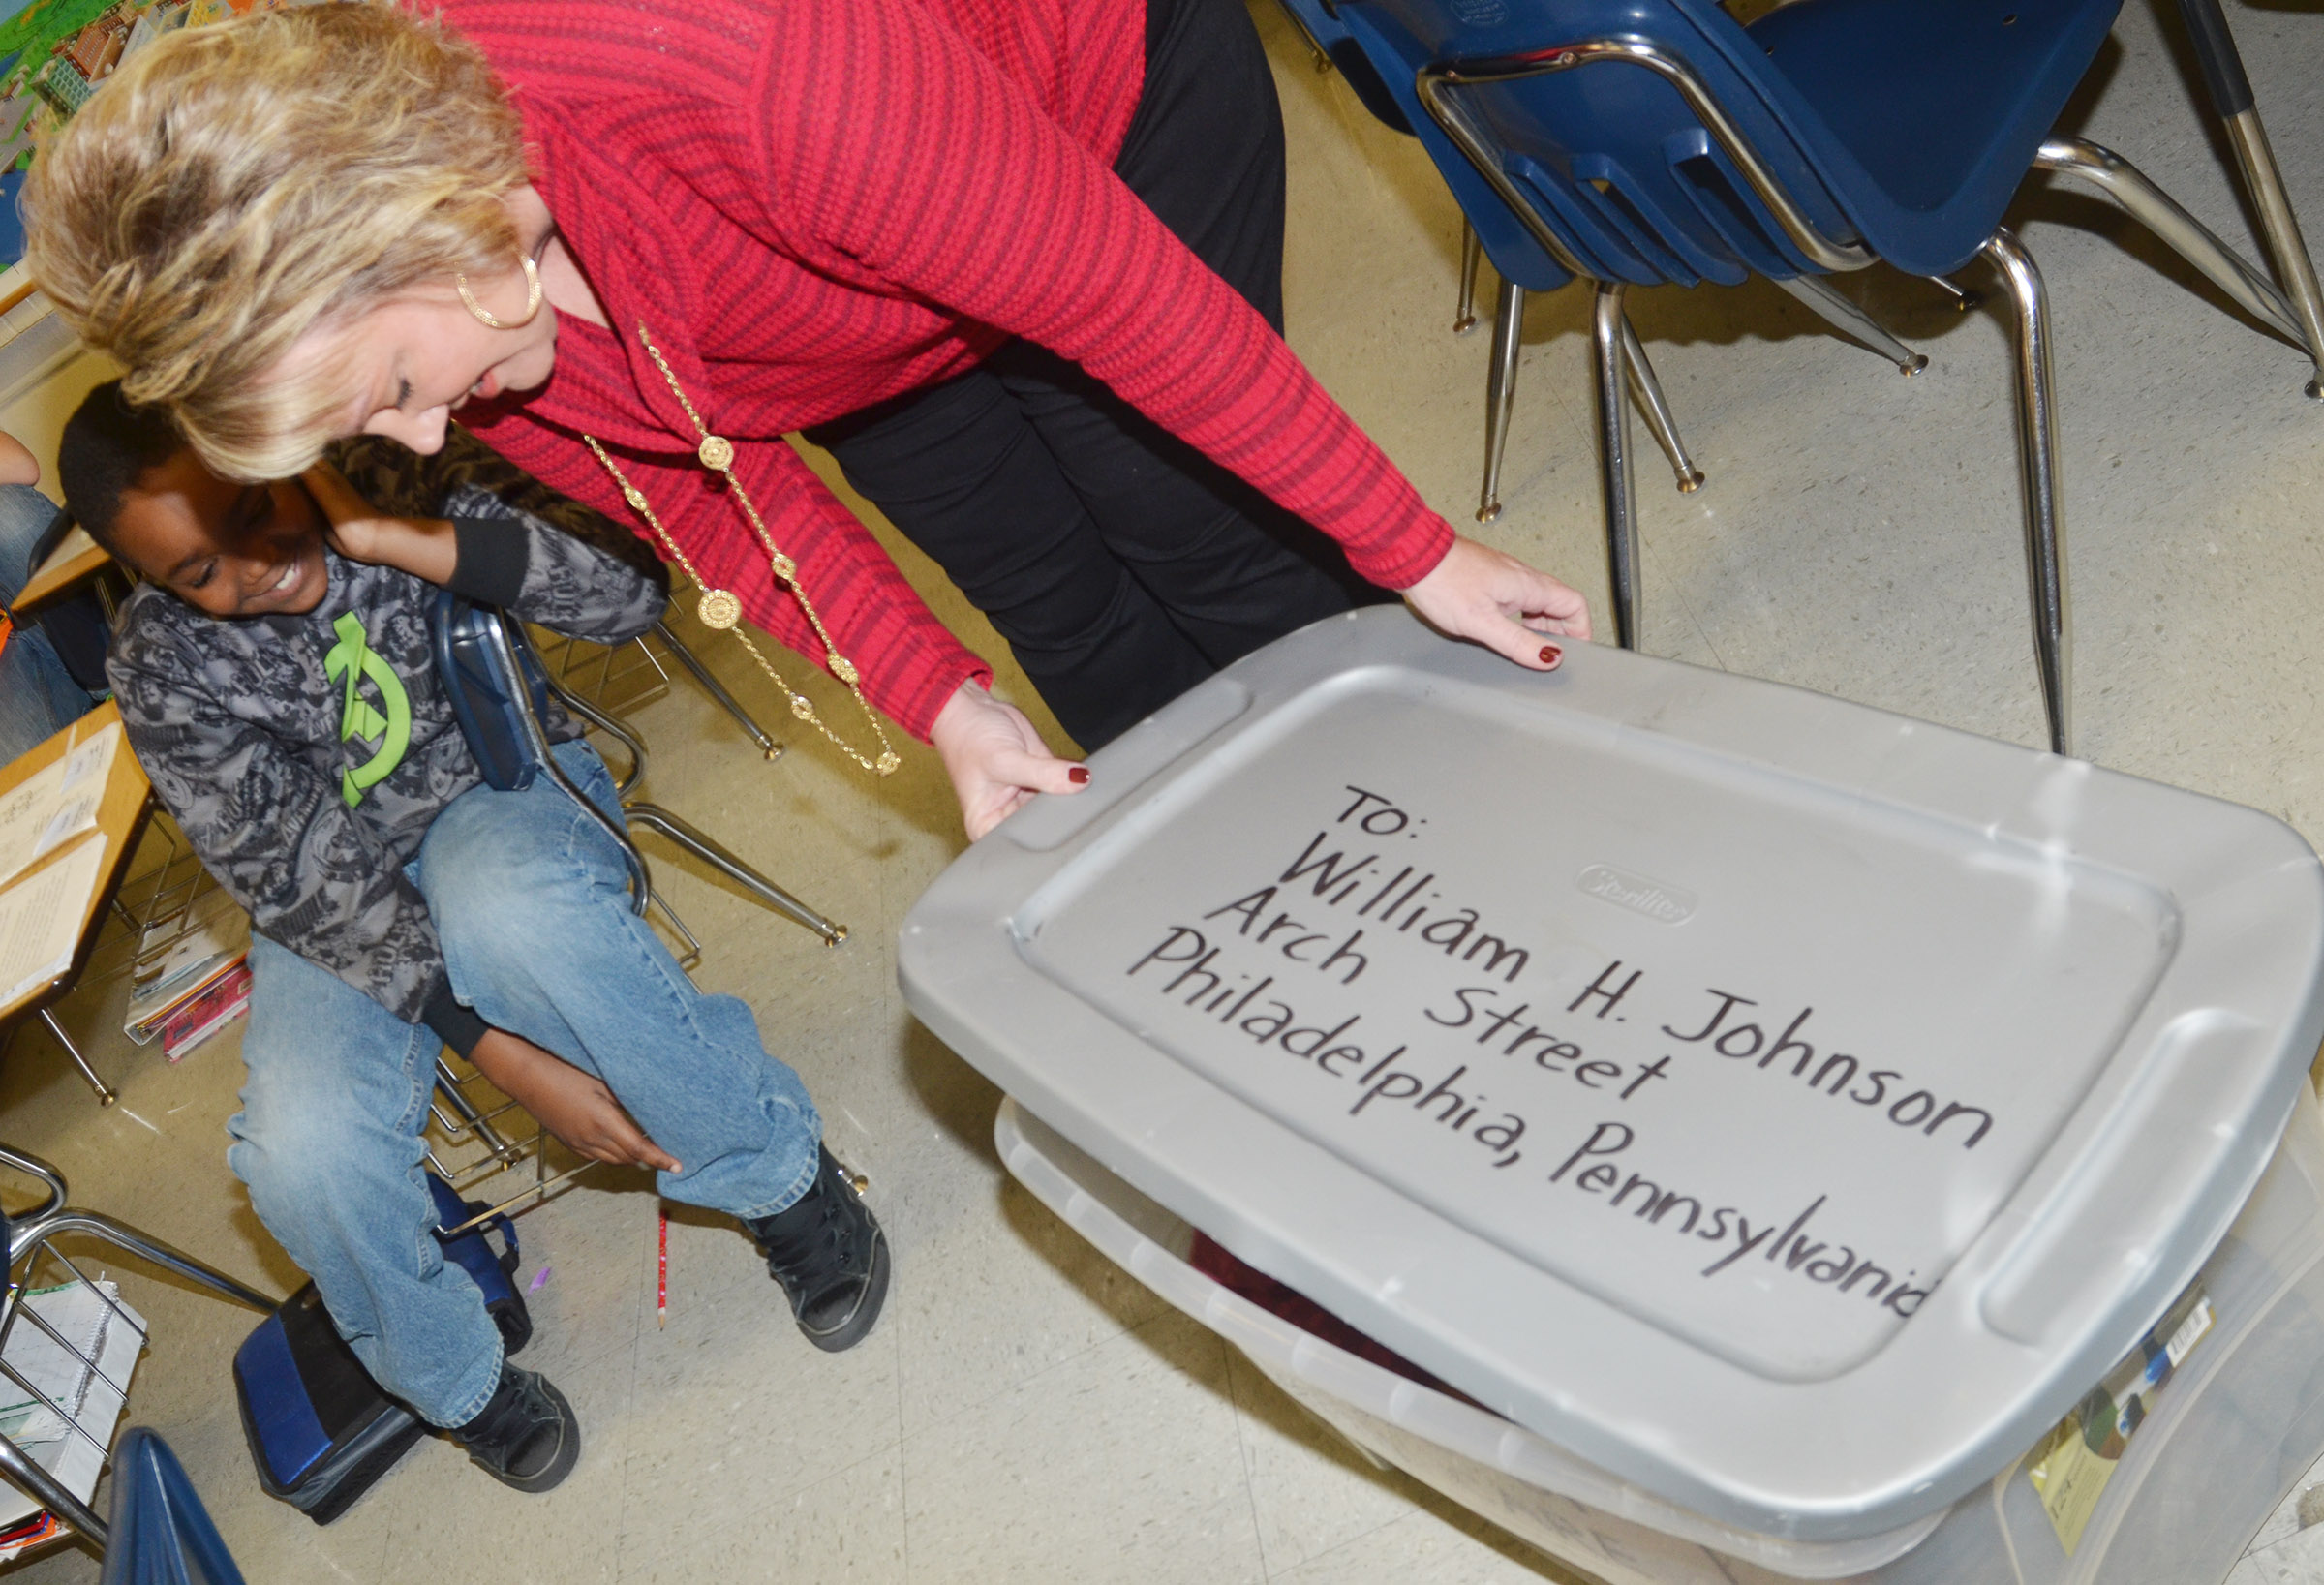 CMS social studies teacher Kaye Agathen looks inside a box in which one of her students is hiding. Henry Brown used a box like this one to mail himself to freedom.